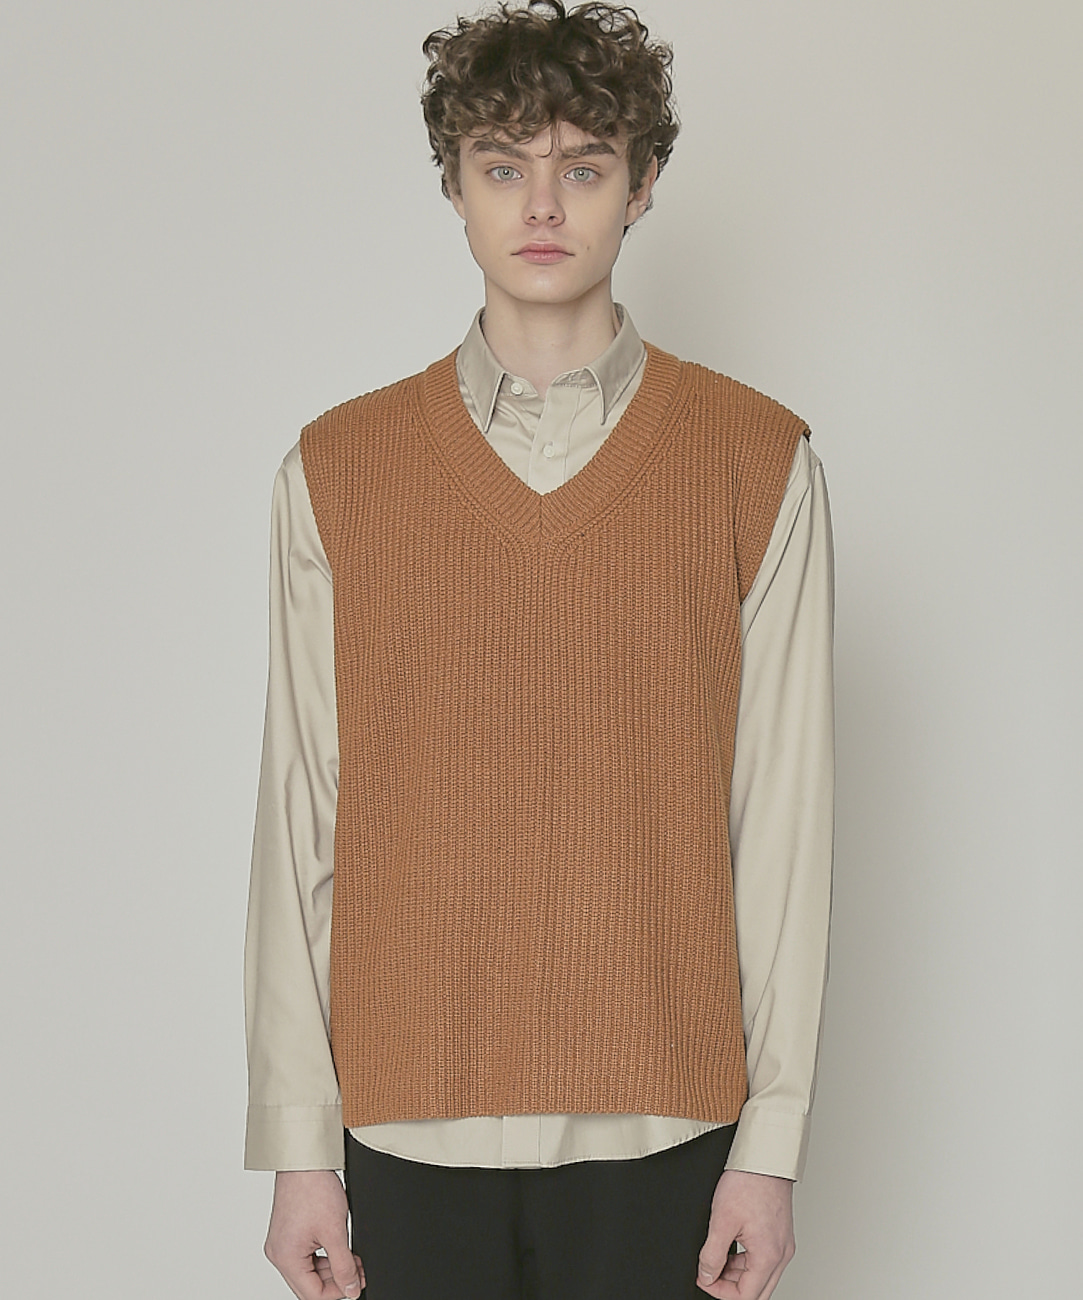 DWS V-NECK KNIT VEST(BROWN)